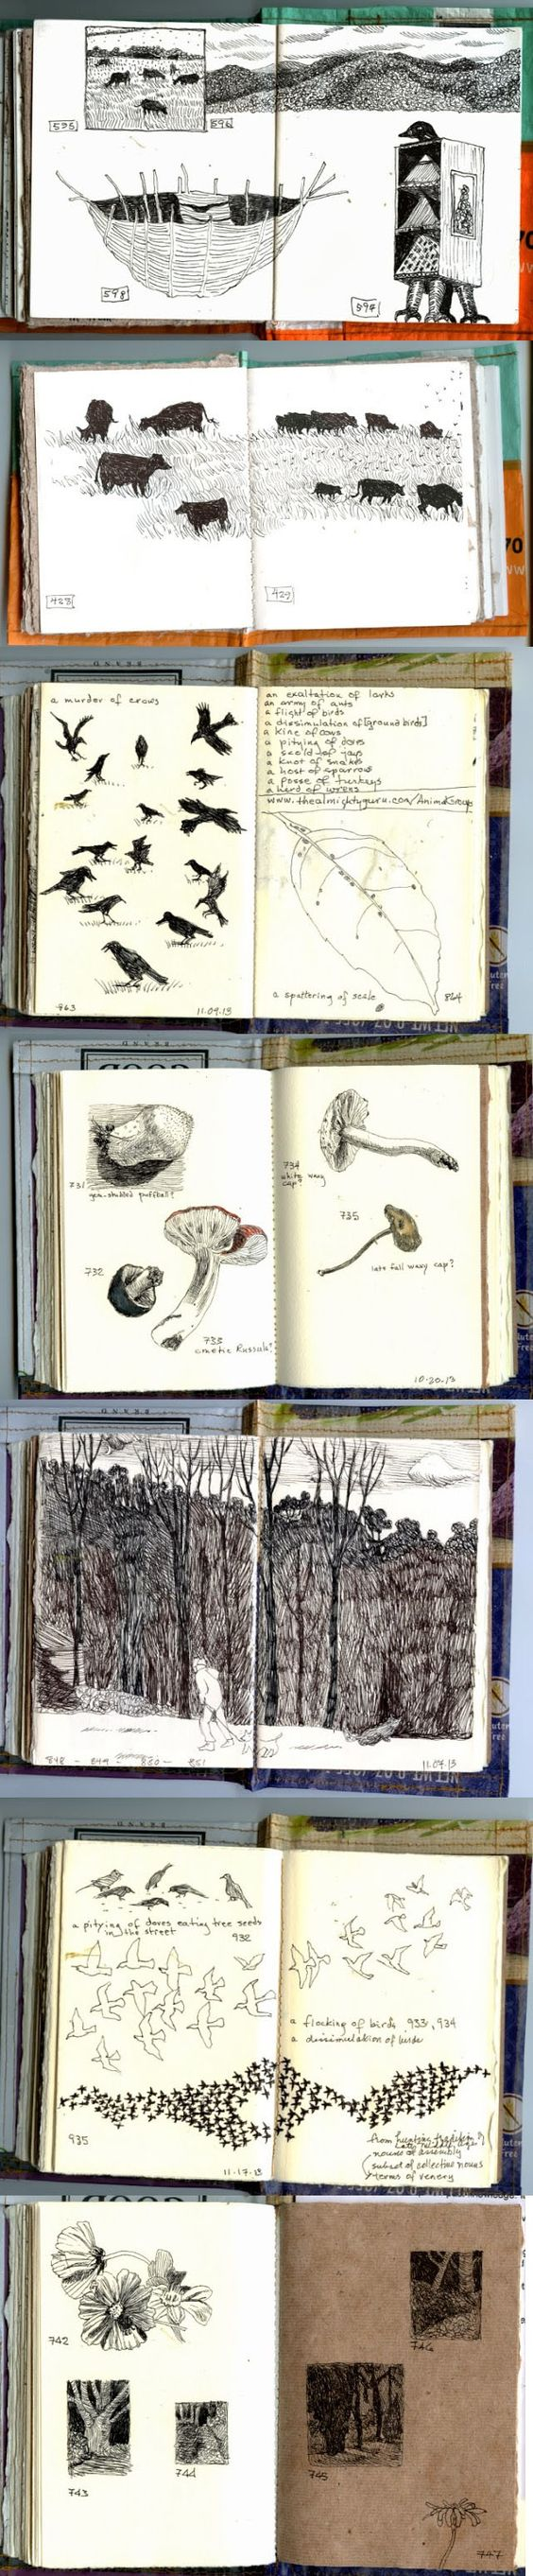 Daily journal by Gwen Diehn, of Real Life Sketchbook. Interesting blog of everyday life & observations; reminds me of Thoreau's journals. #naturalist